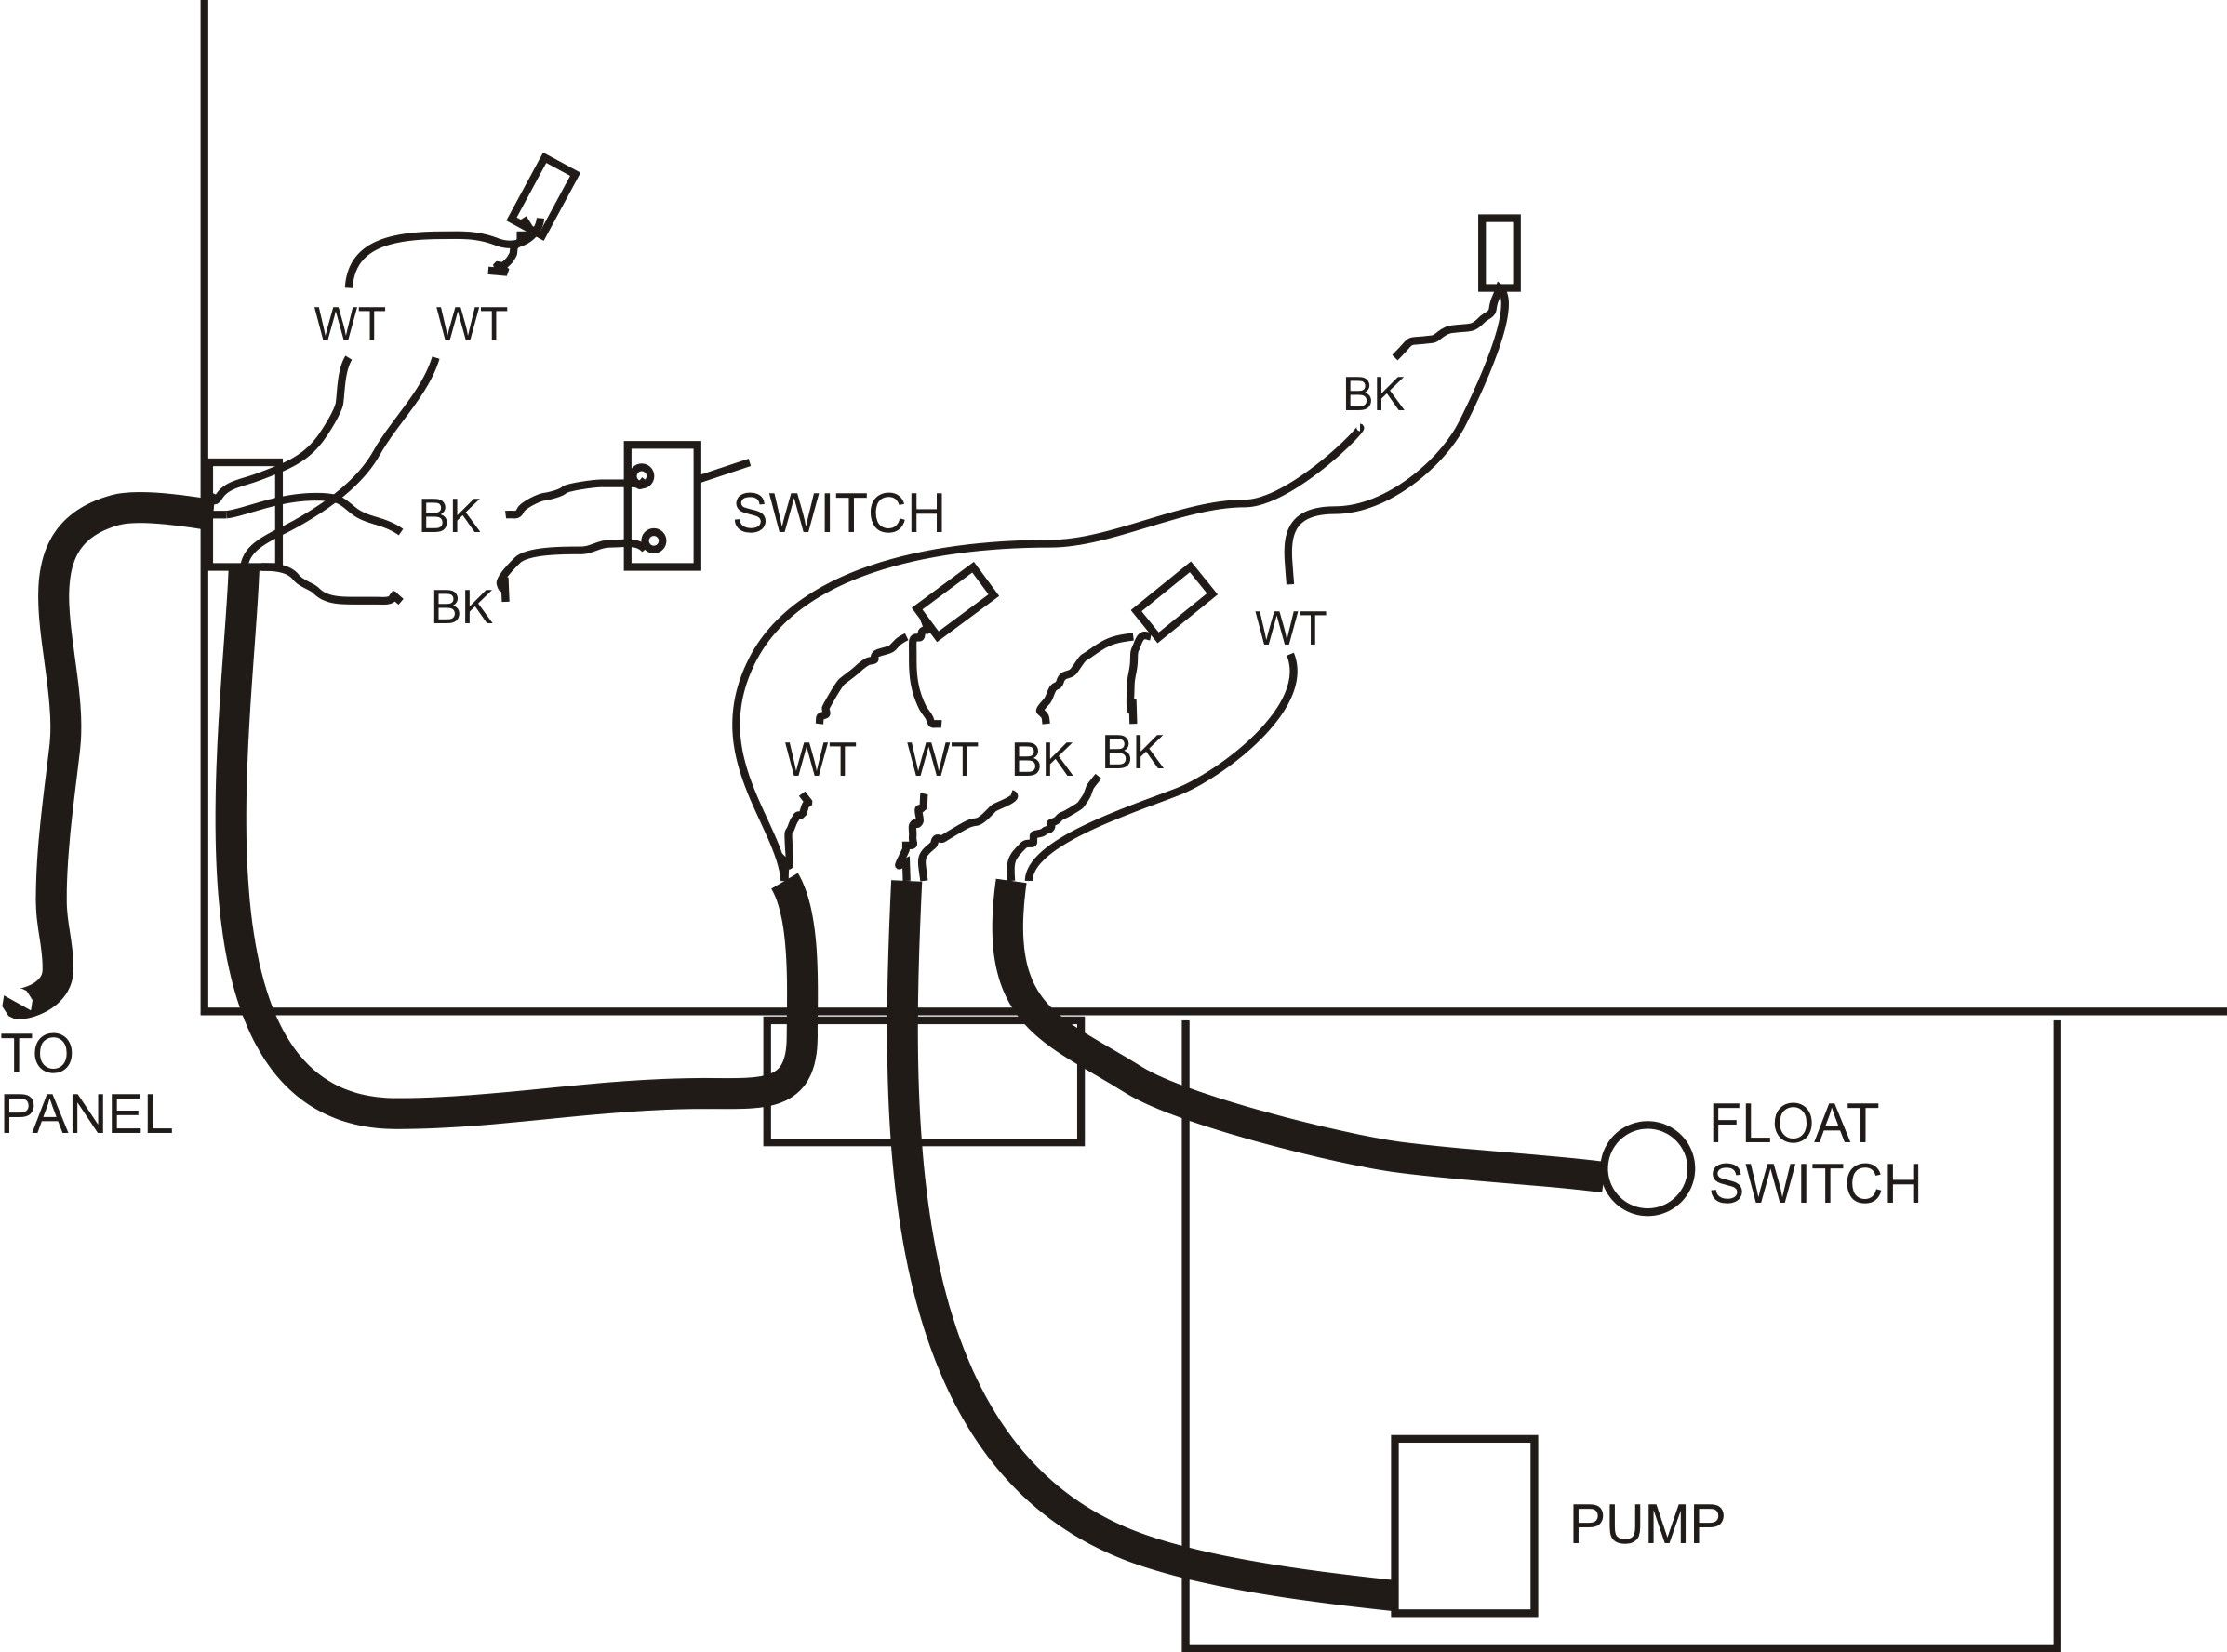 small resolution of water well pump control box septic wiring diagram submersible wire septic tank pump wiring diagram septic pump wiring